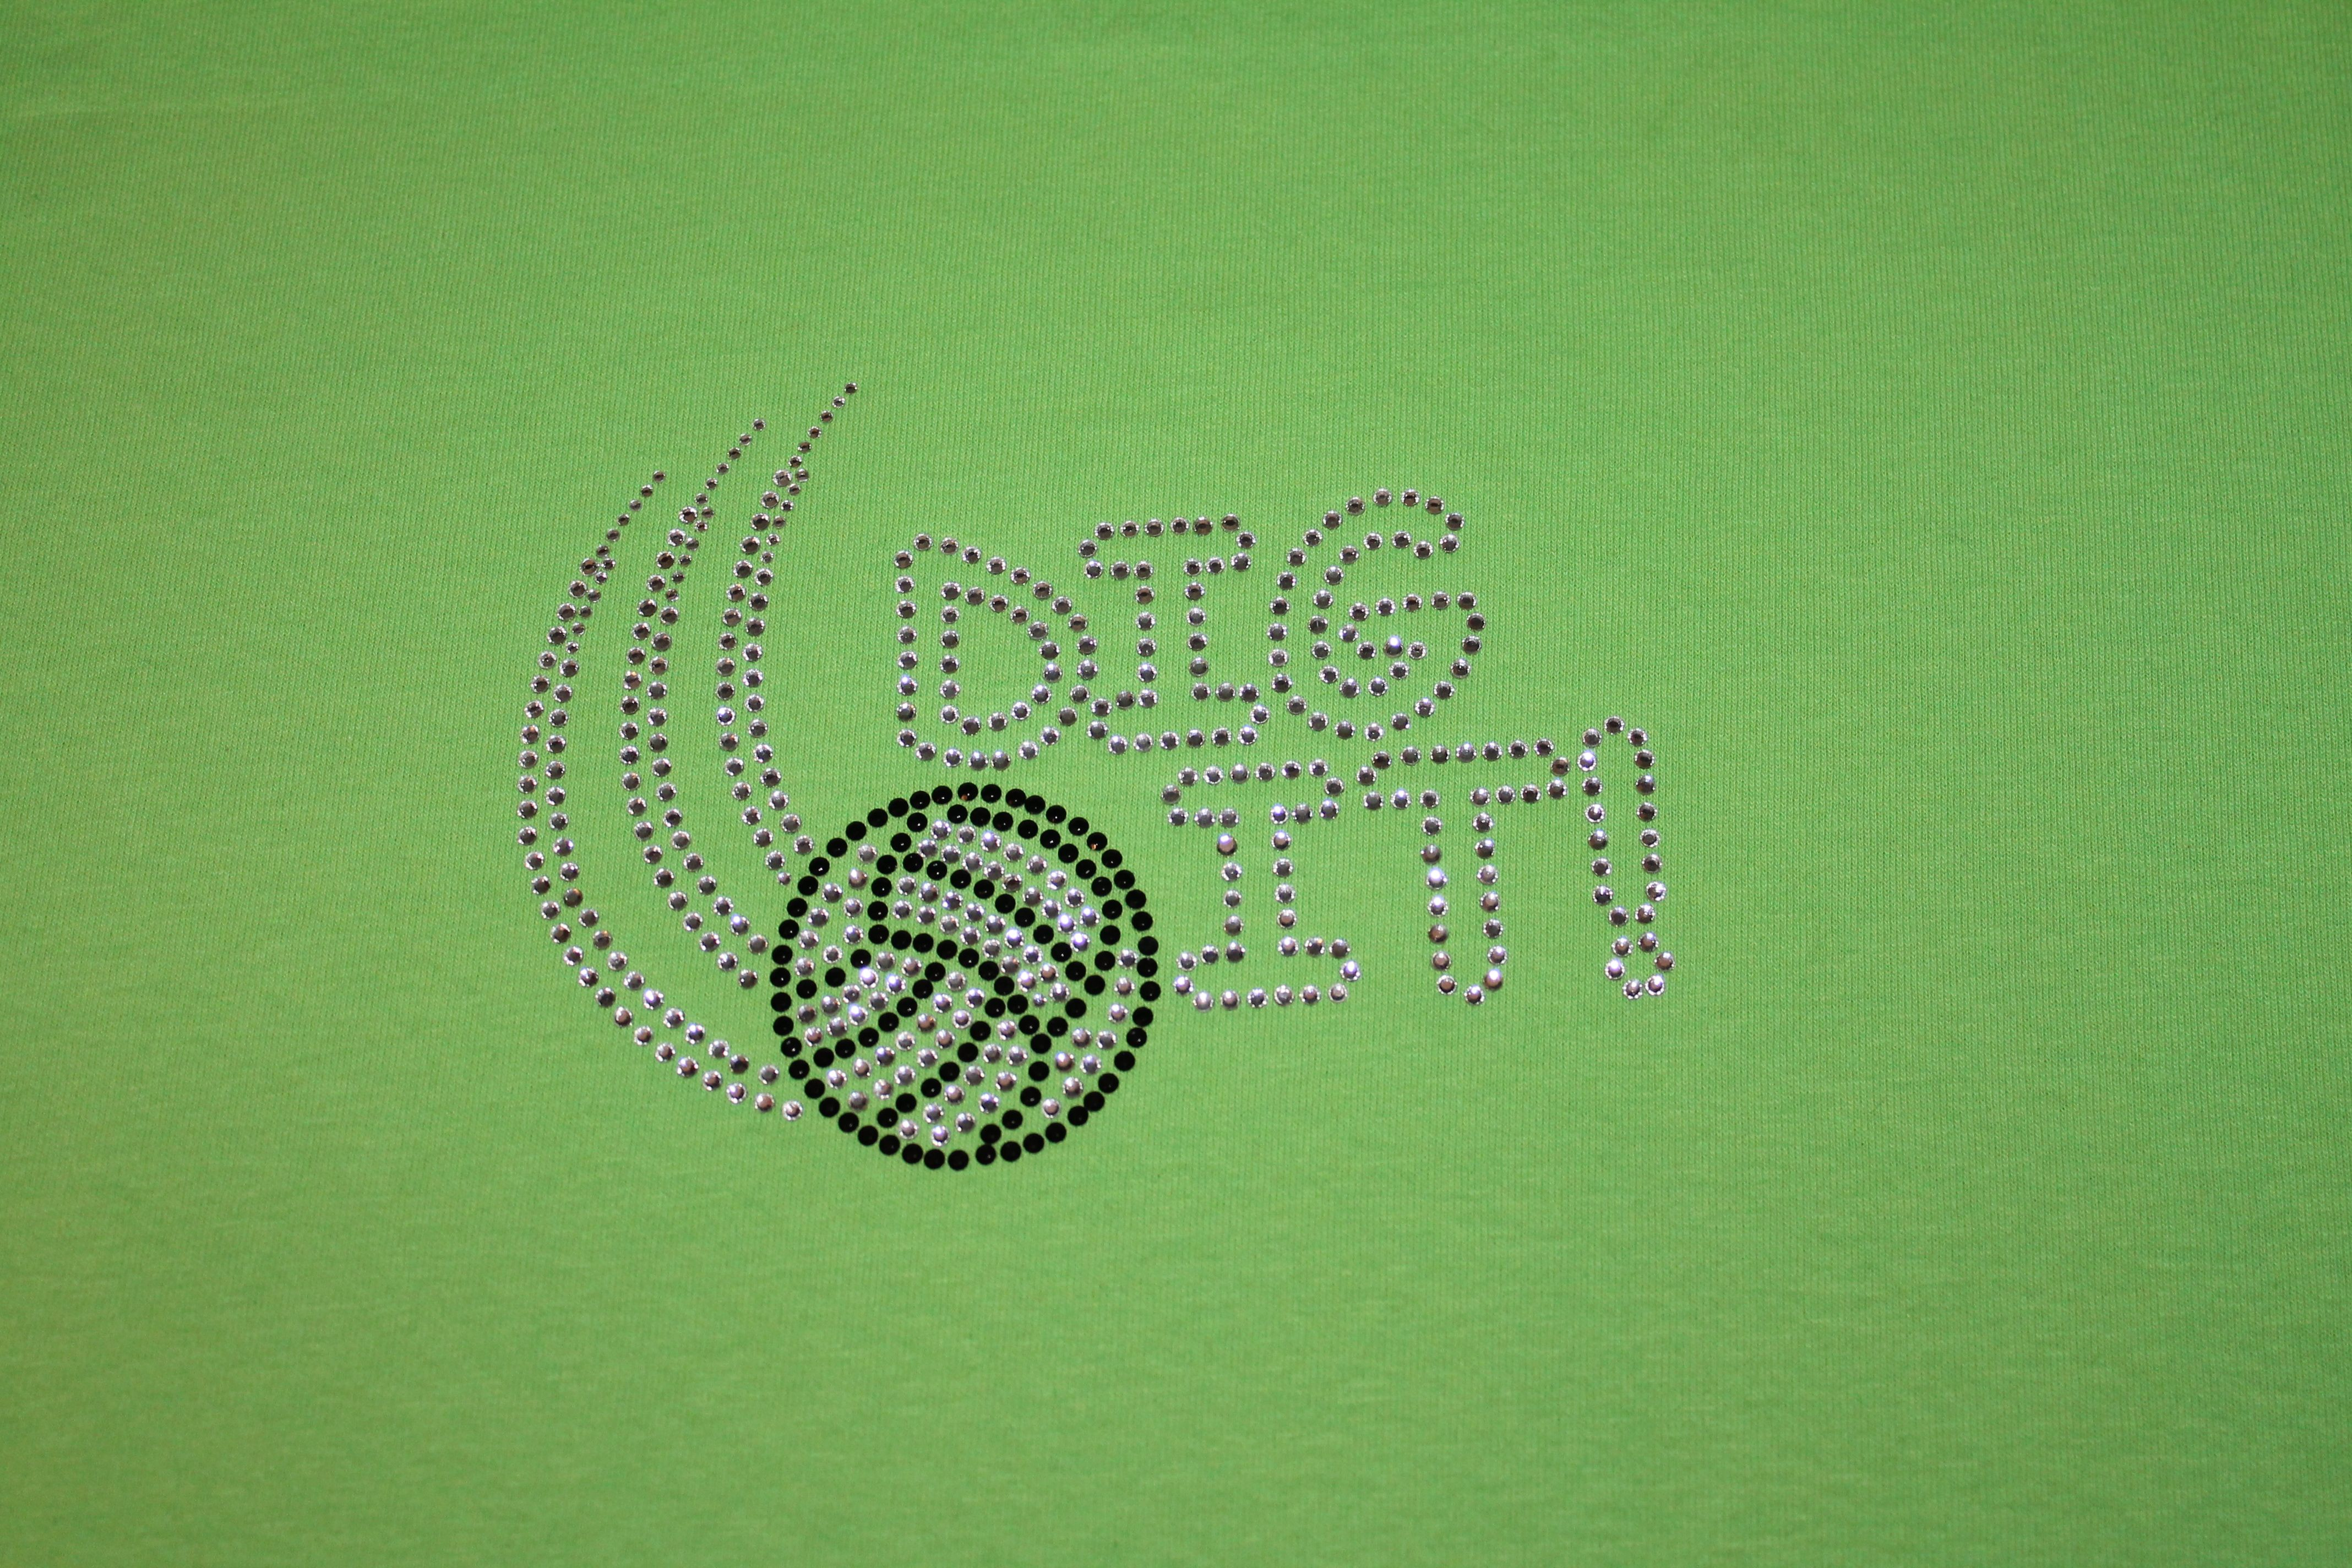 https://www.etsy.com/listing/182906285/dig-it-volleyball-rhinestone-embellished?ref=shop_home_active_1